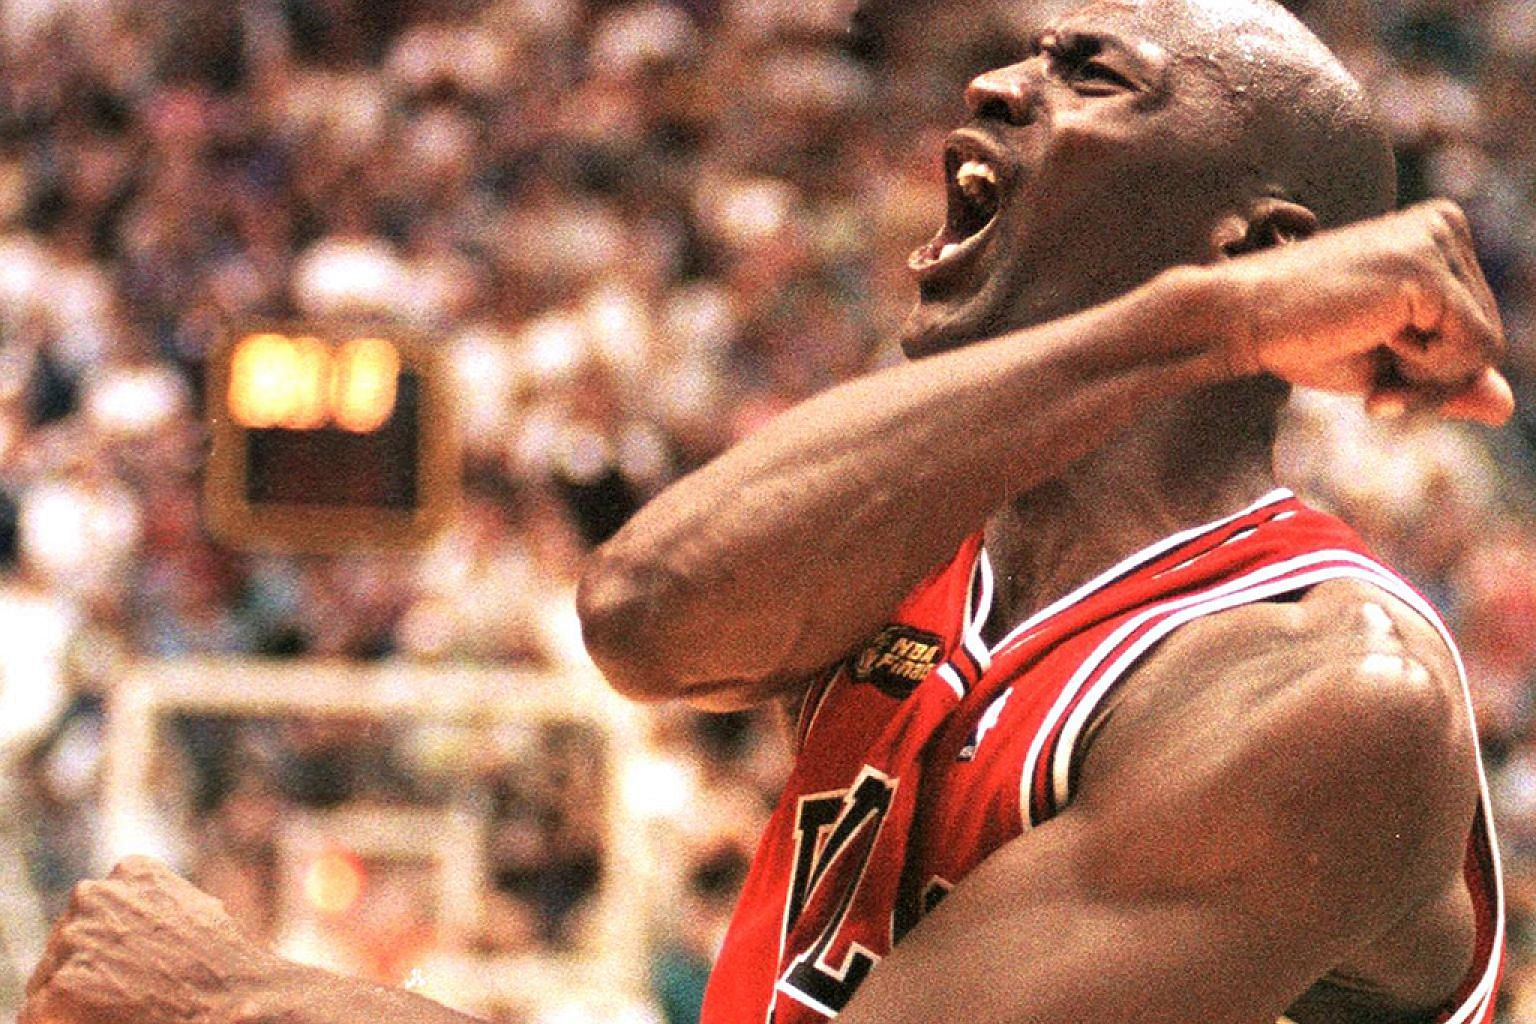 Michael Jordan of the Chicago Bulls celebrating after winning Game Six of the 1998 NBA Finals against the Jazz at the Delta Centre in Utah. He sank the winning jumper to give the Bulls a 87-86 victory and their sixth NBA title.